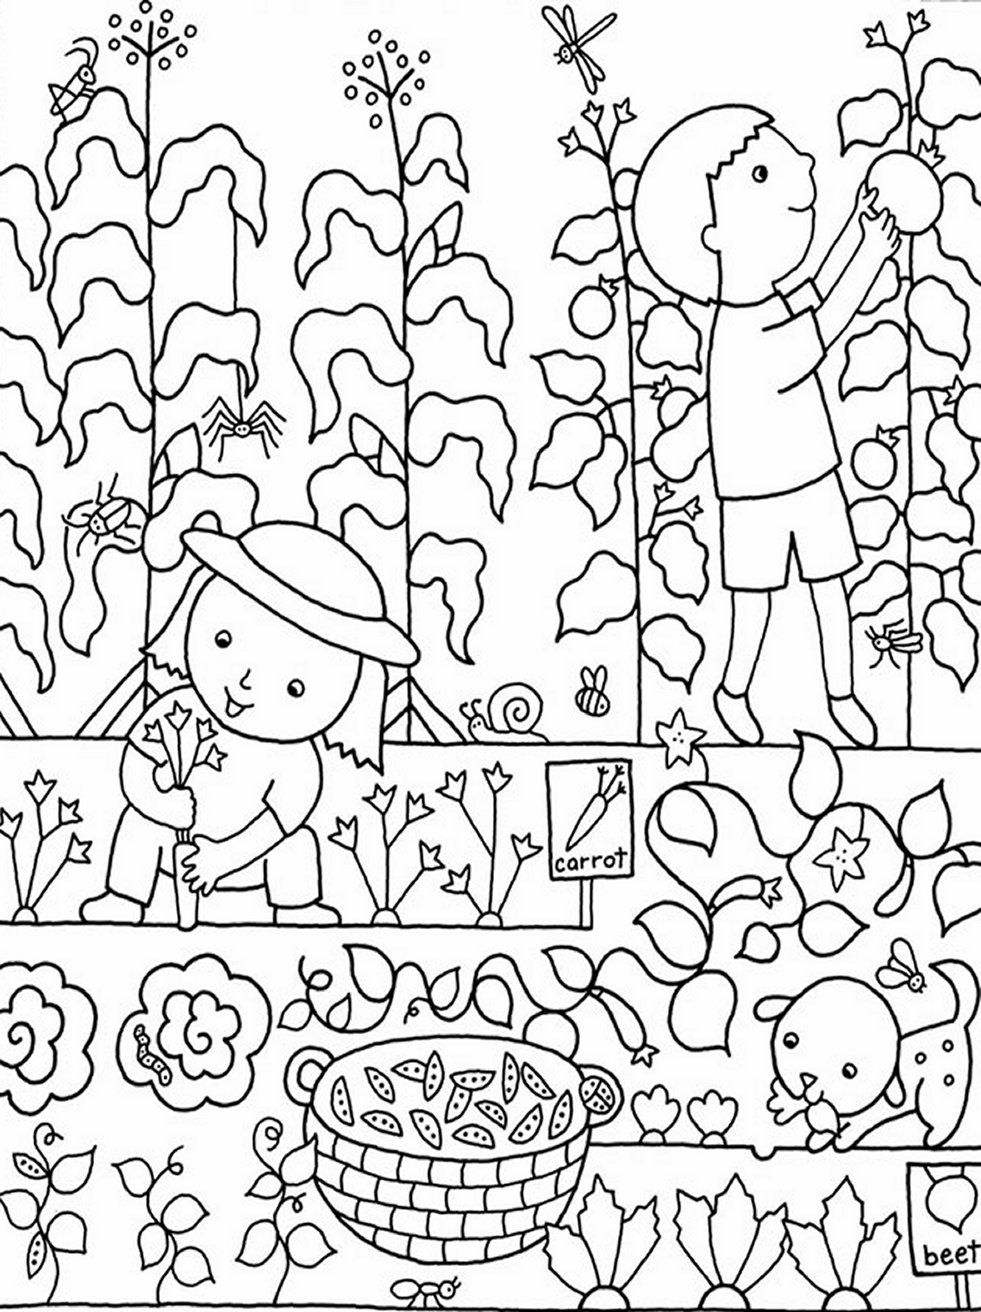 free printable secret garden coloring pages | Kids Gardening Coloring Pages Free Colouring Pictures to ...